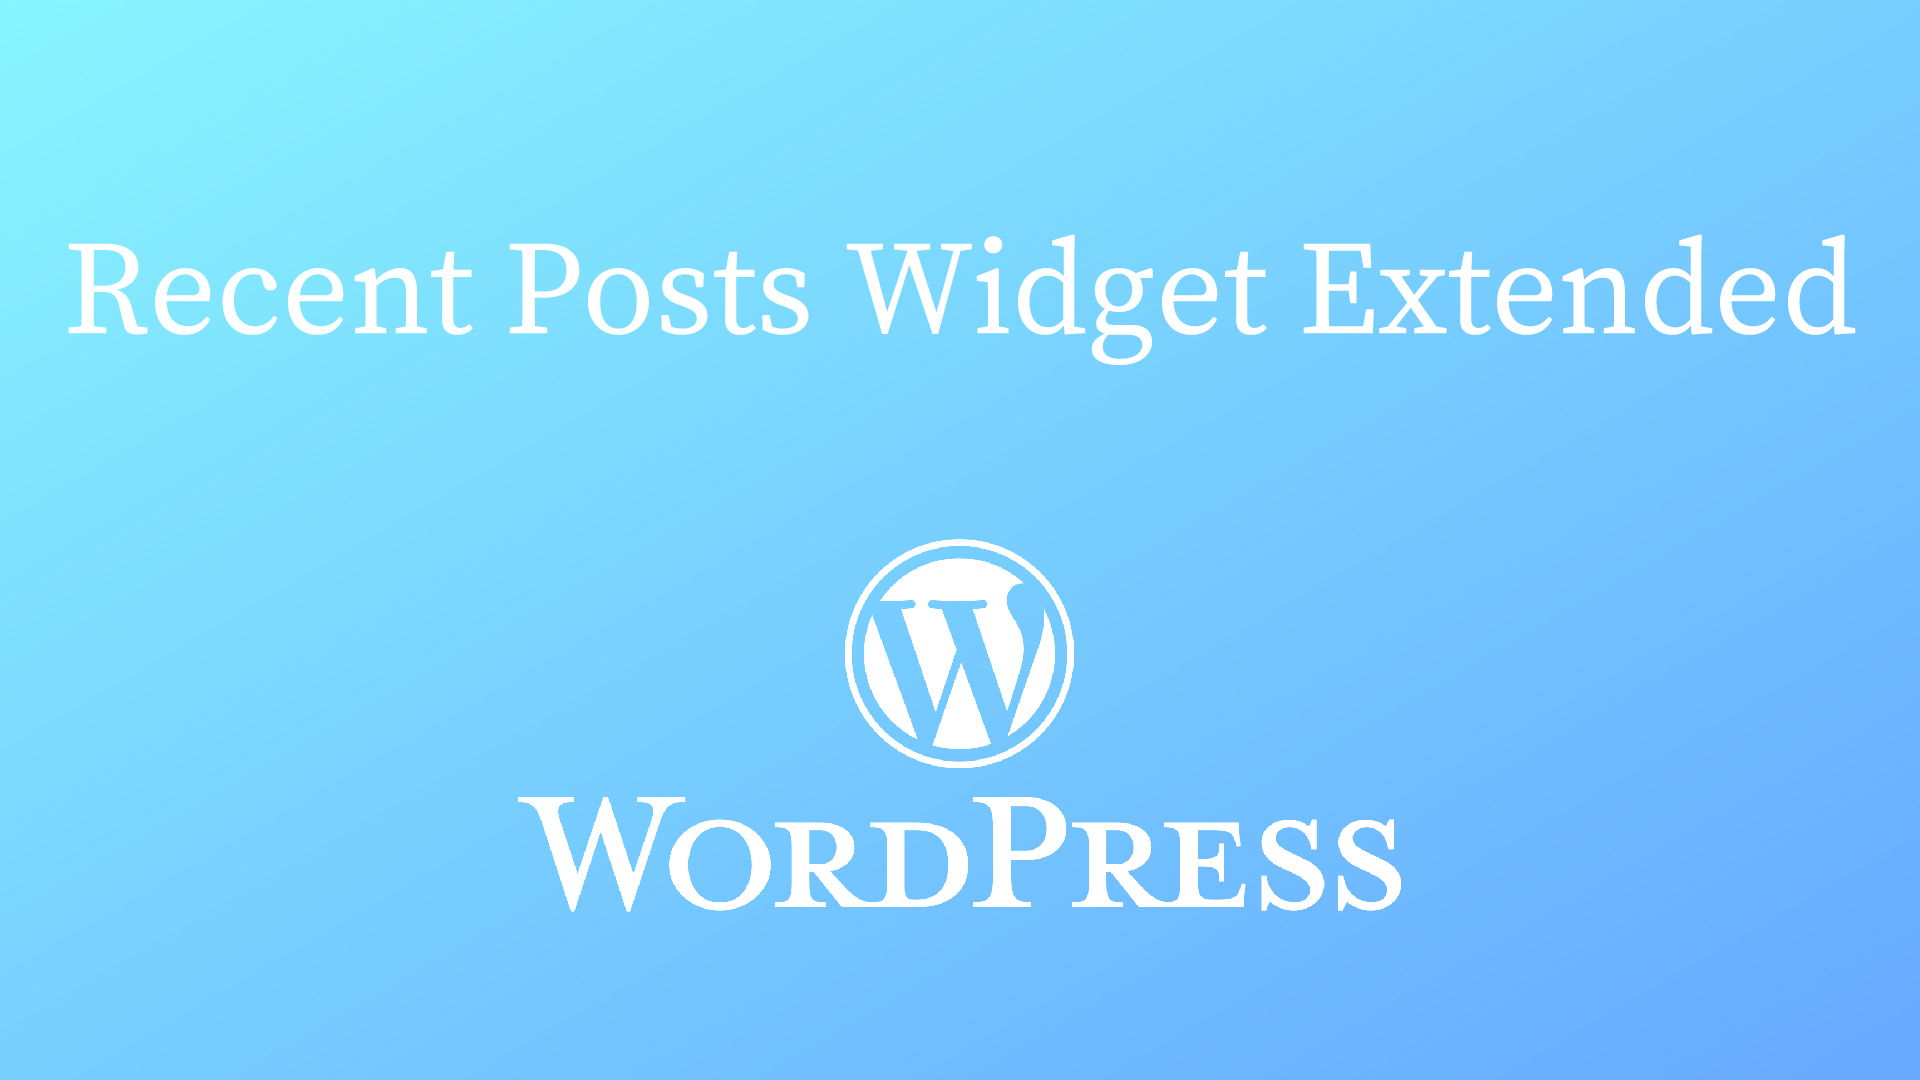 Recent Posts Widget Extendedの使い方!サムネイル付きで新着記事を表示させる方法